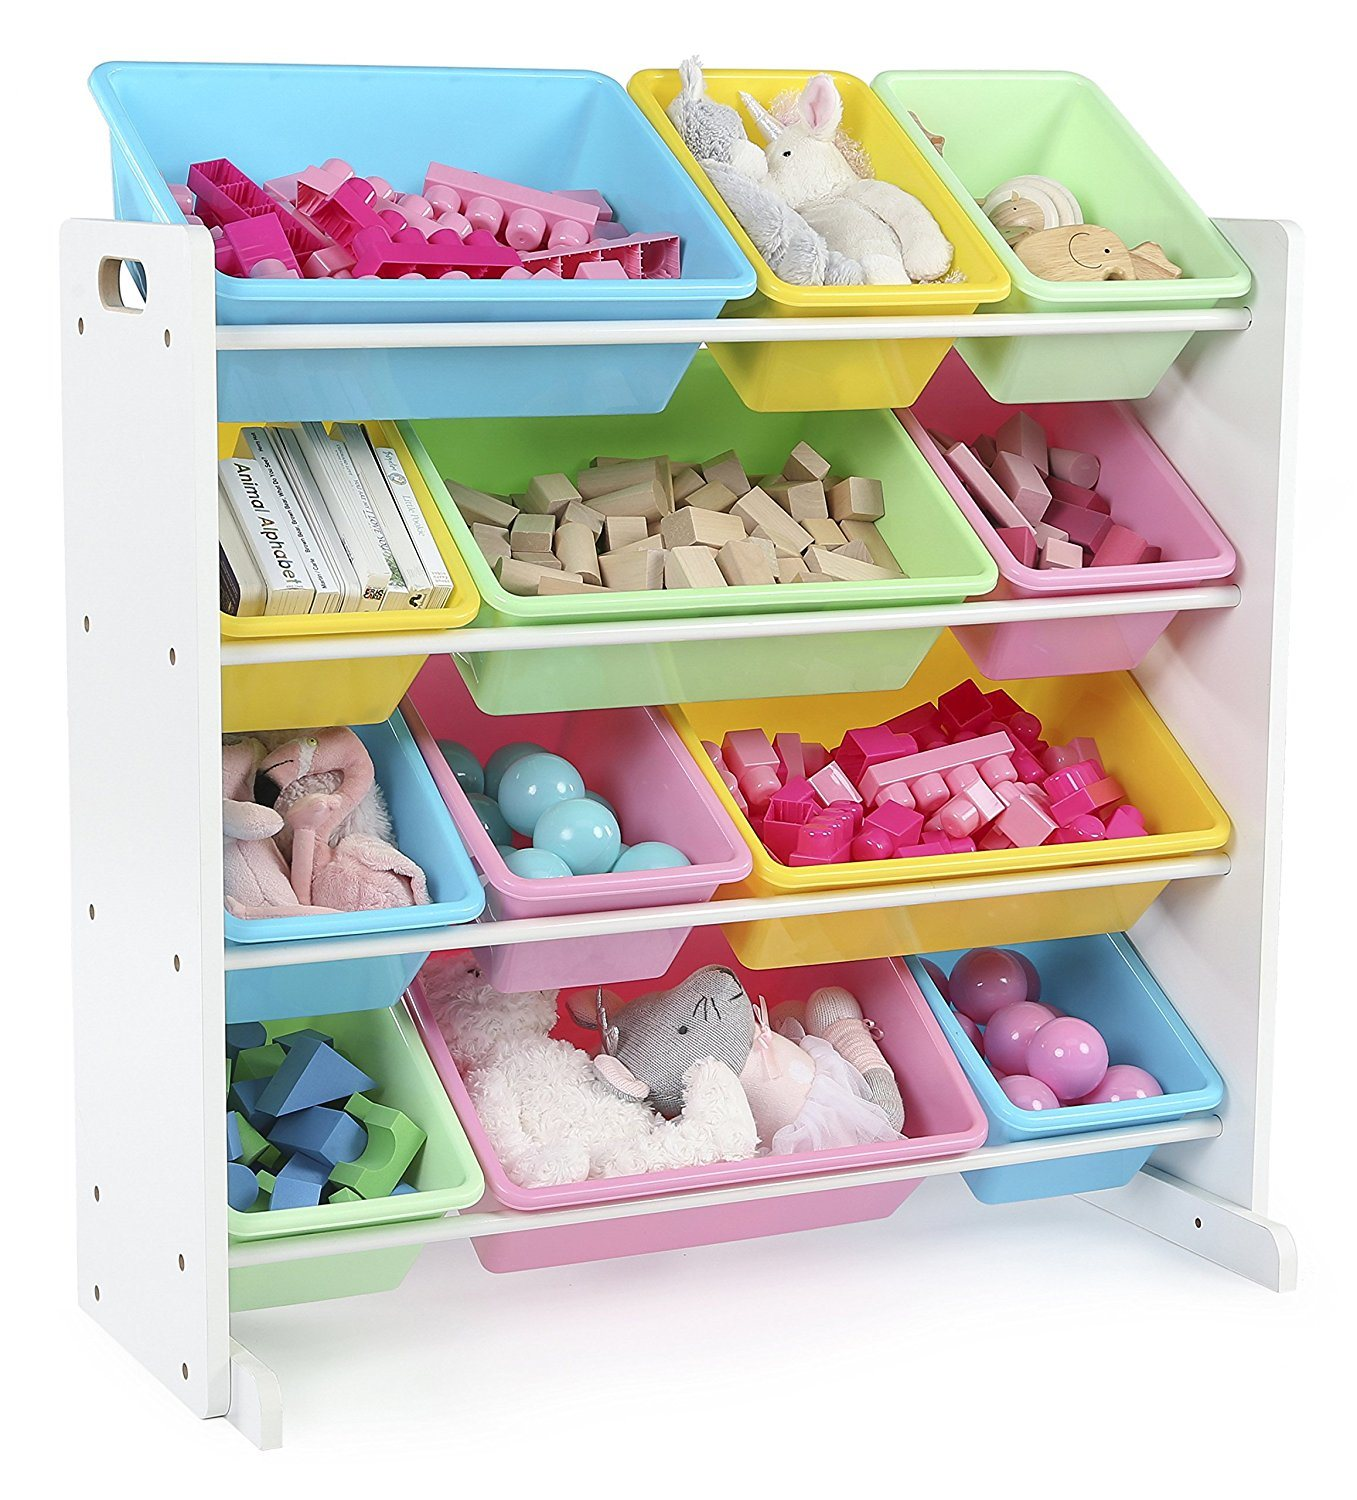 China Morden Children Toy Storage With Plastic Bins For Kids All Units Collection Organizer